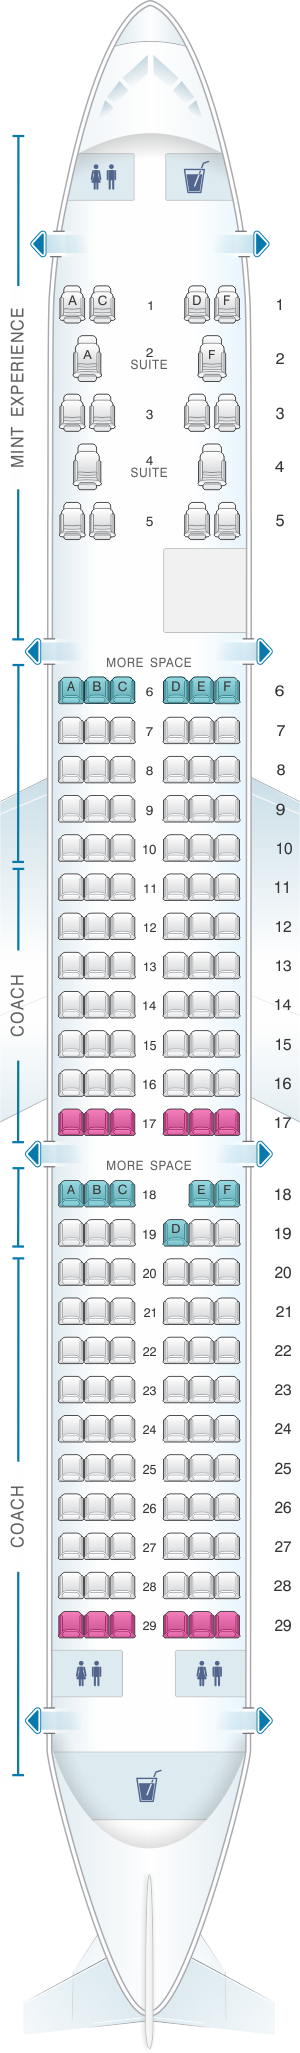 Seat map for JetBlue Airways Airbus A321 Config 2